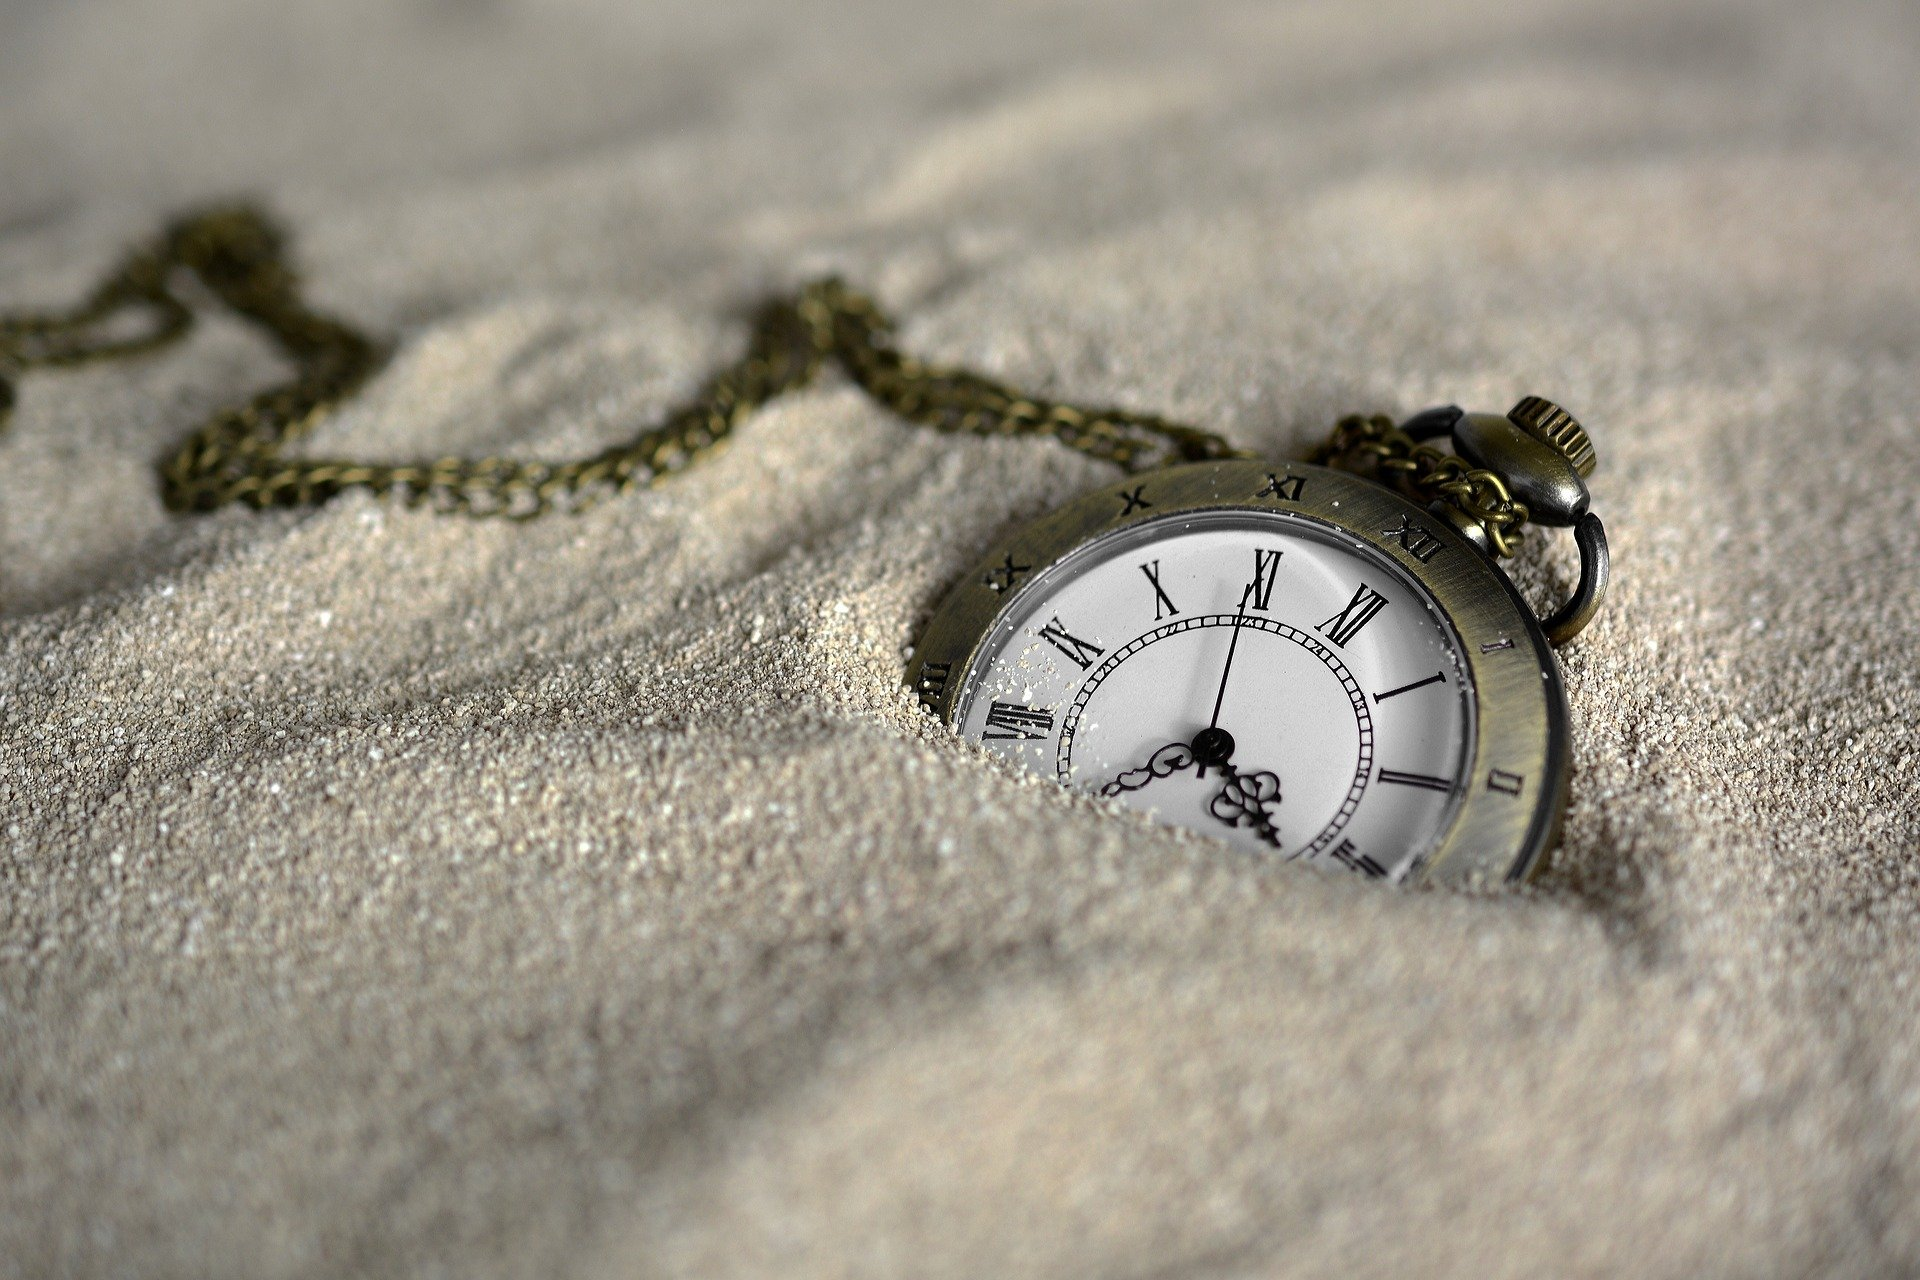 Pocket Watch lays buried in the sand. Photo courtesy of anncapictures on Pixabay.